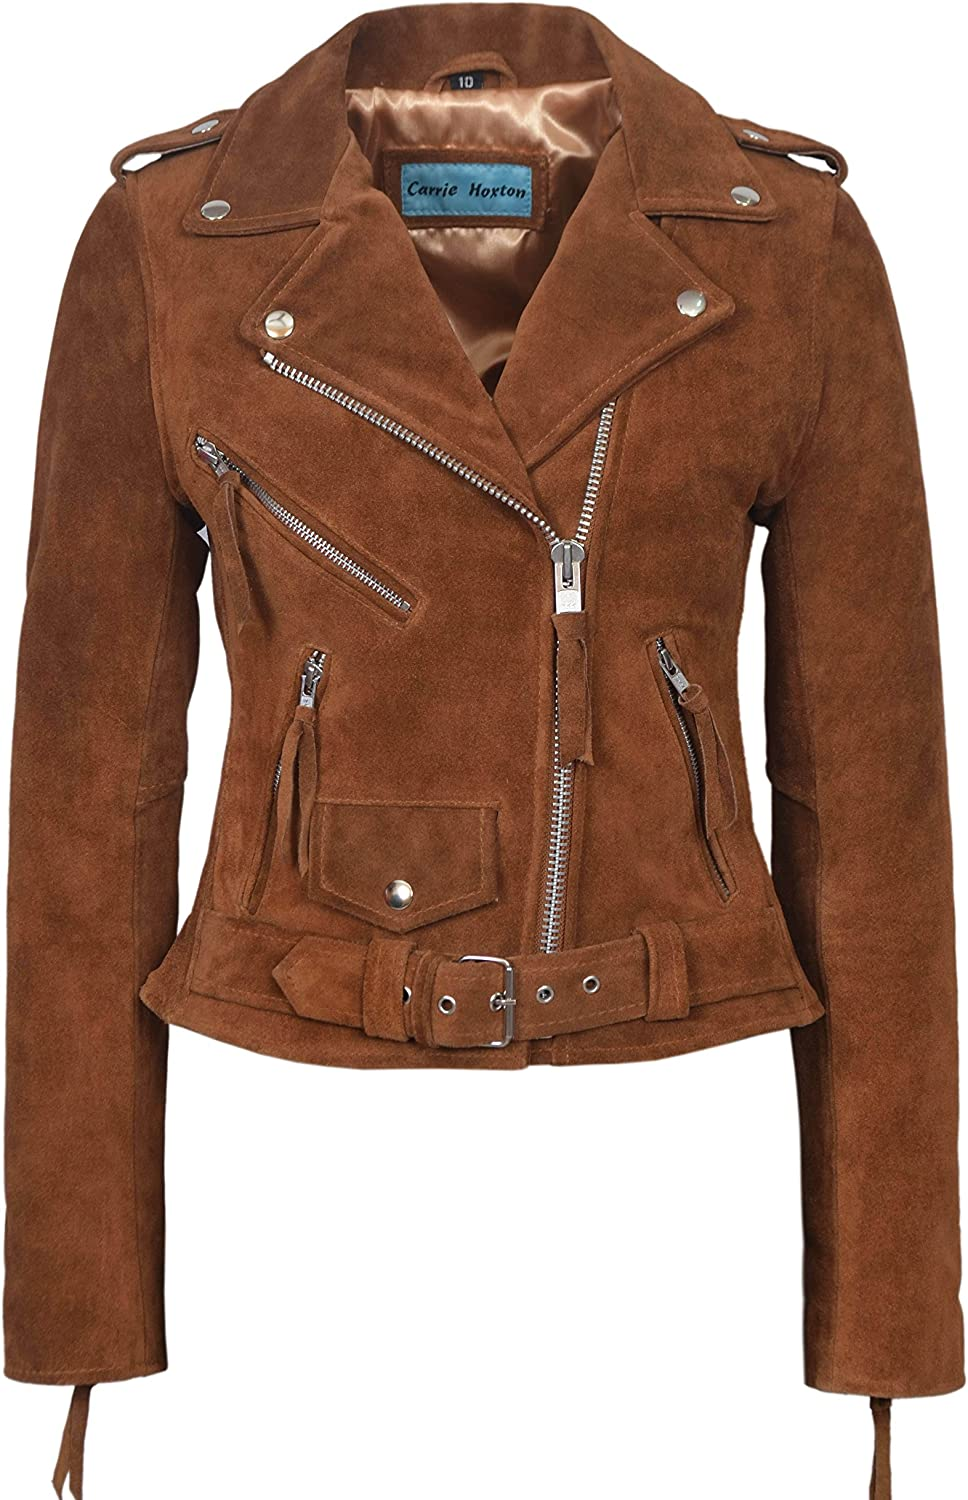 'CLASSIC BRANDO Ladies TAN SUEDE Biker Style Motorcycle Real soft Leather Jacke